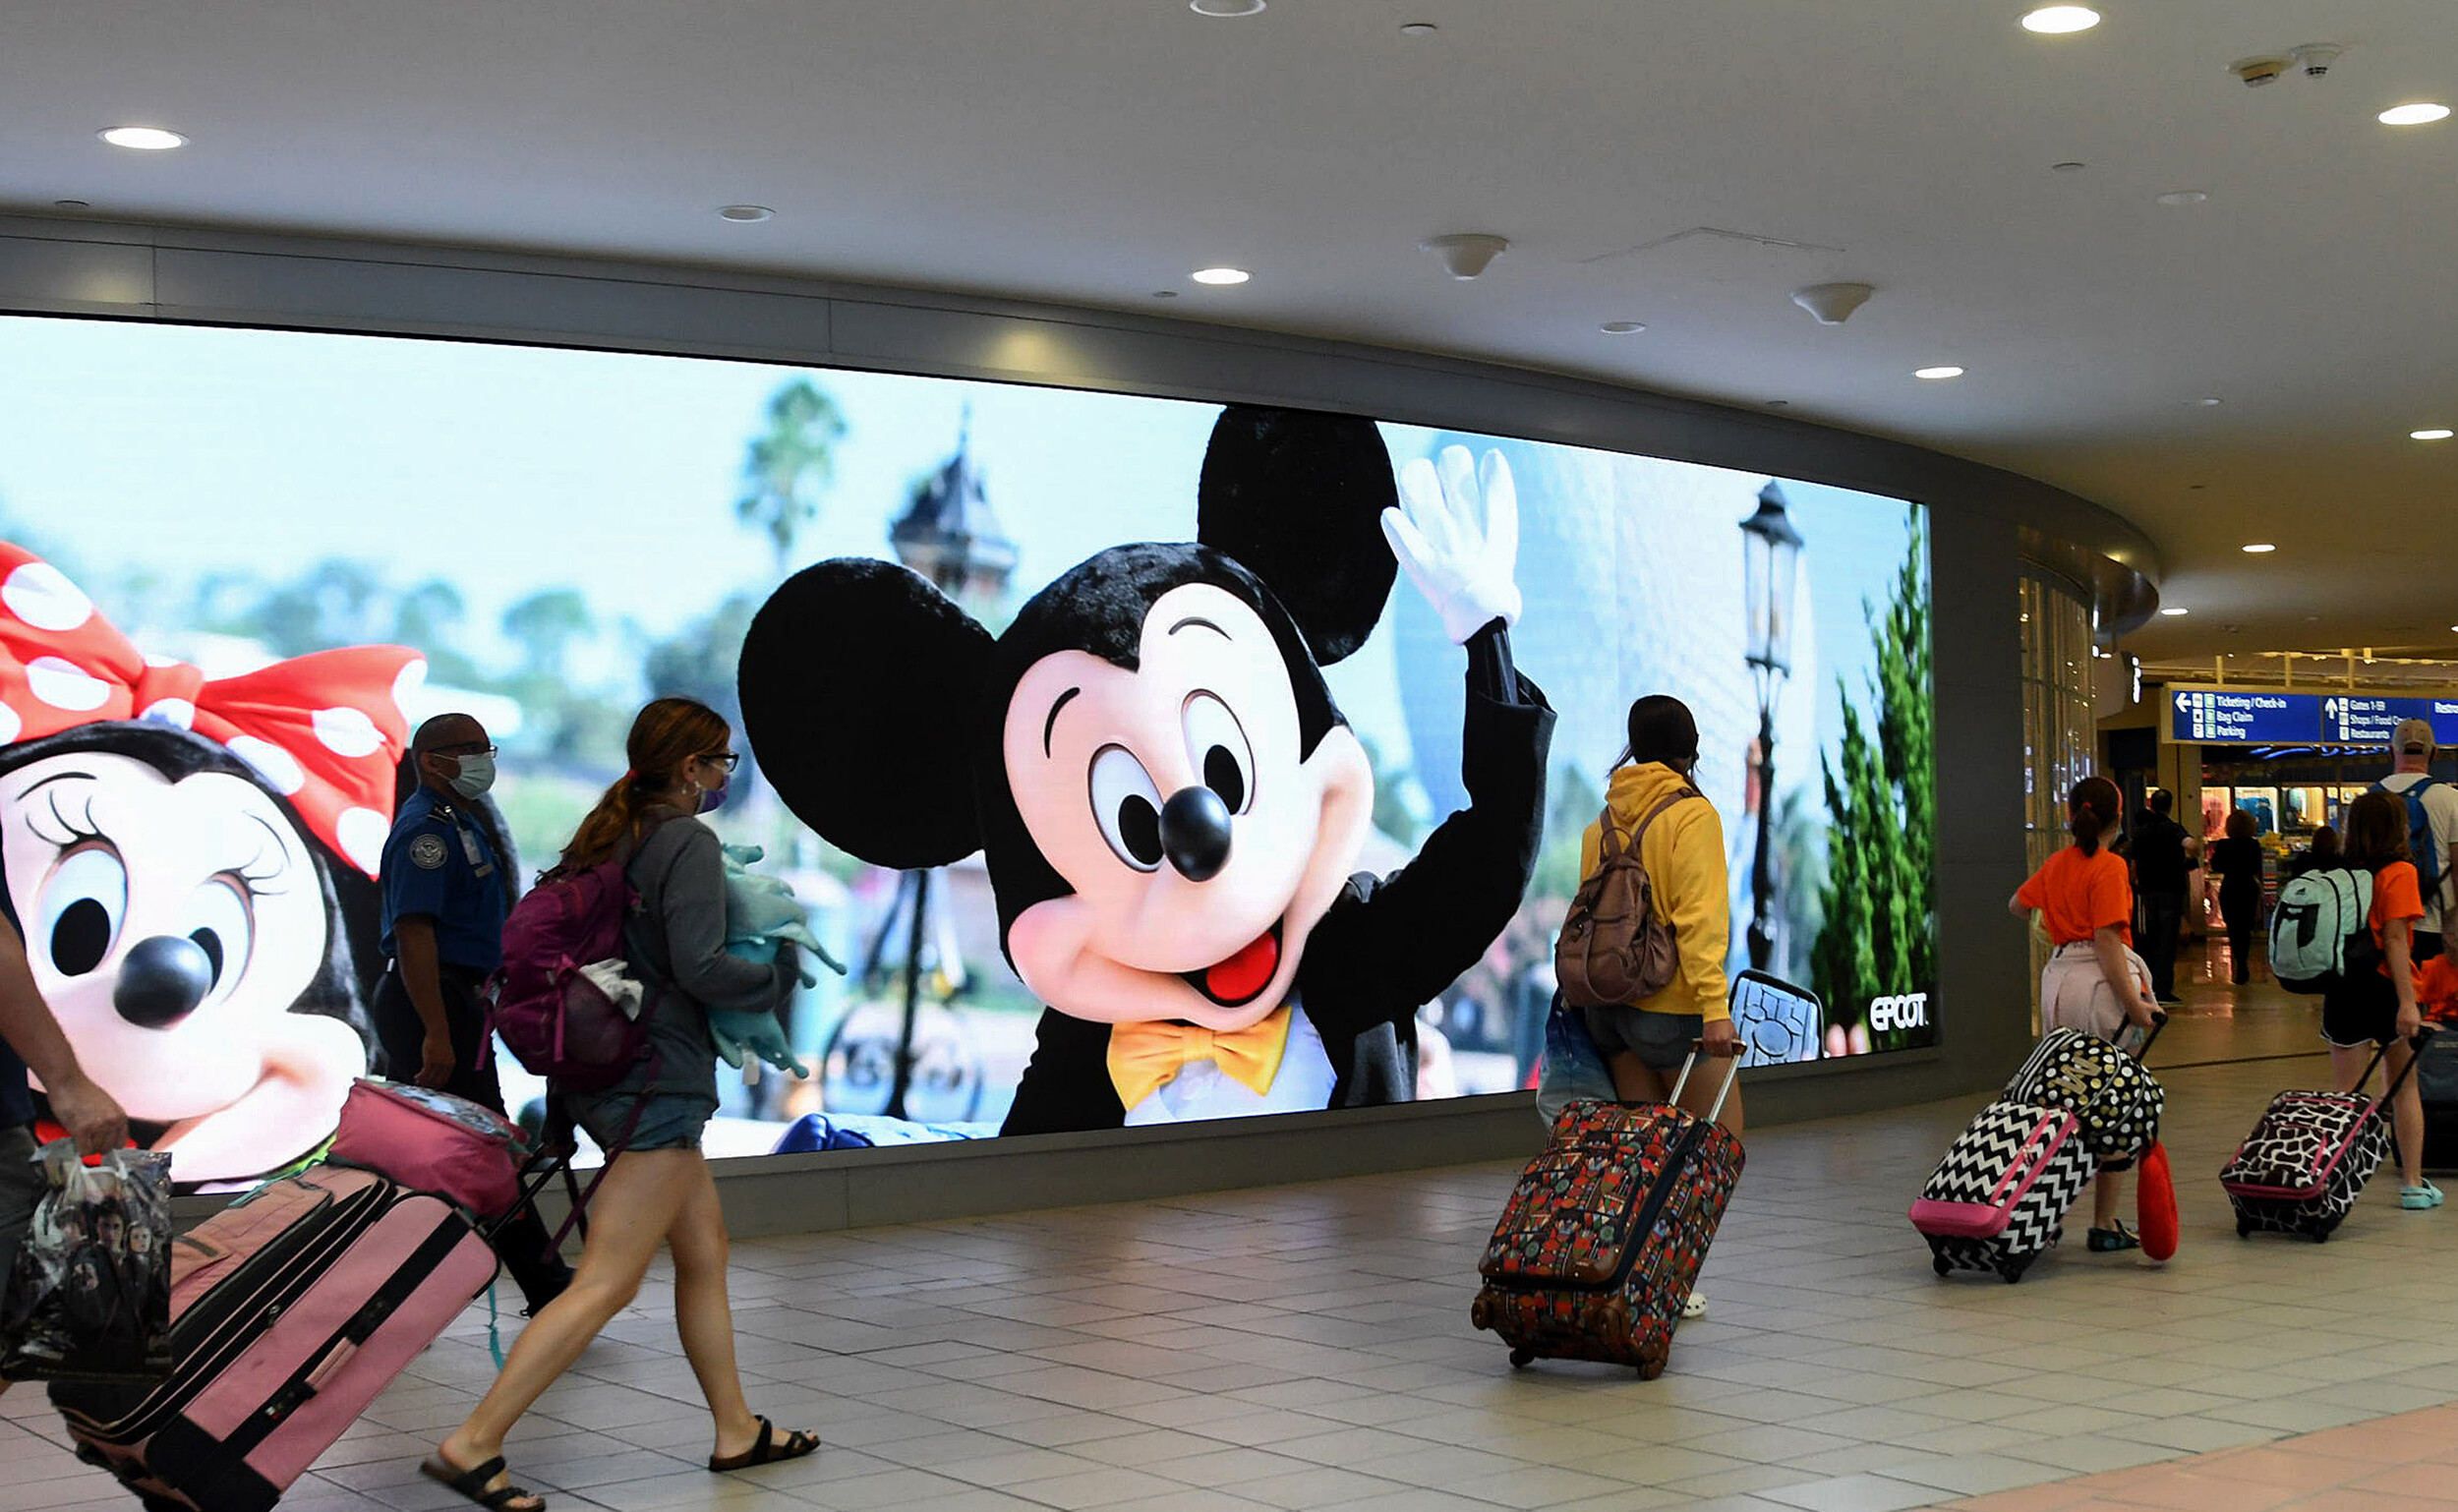 <i>Paul Hennessy/SOPA Images/LightRocket/Getty Images/FILE</i><br/>The mayor of the Florida county that's home to Disney World and Universal Studios is sounding the alarm on a spike of Covid-19 cases in the area